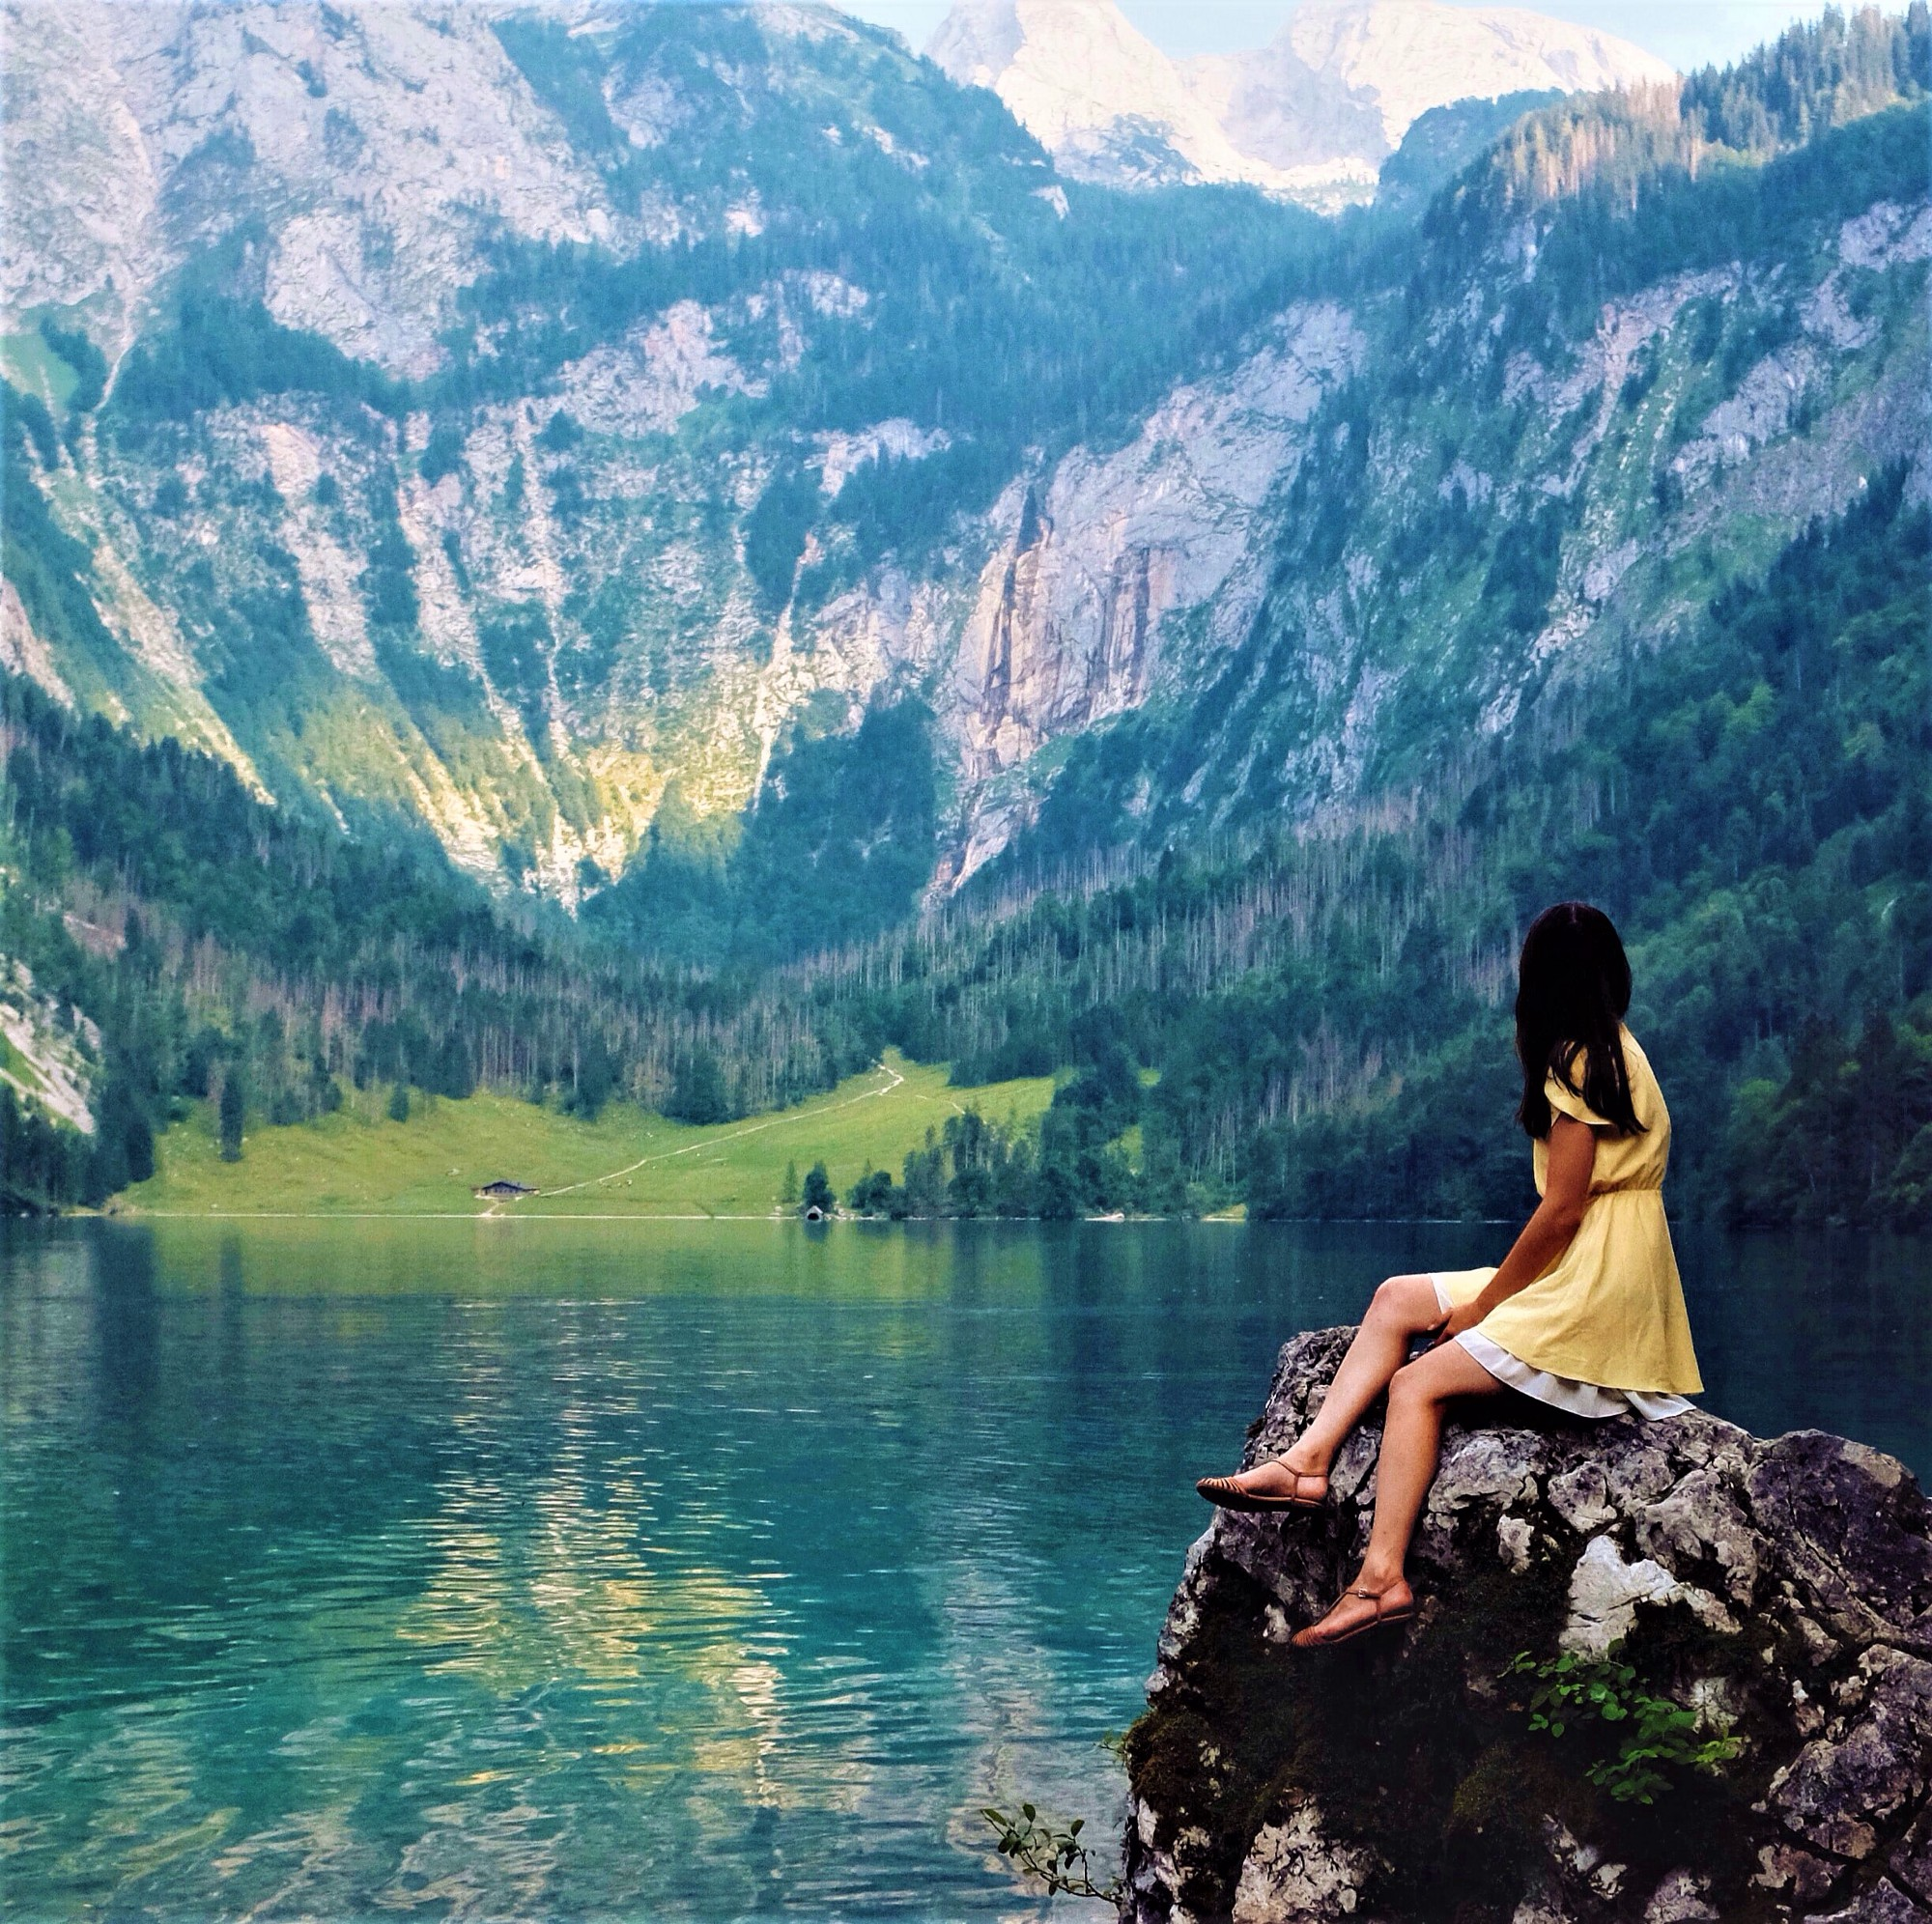 girl with long dark hair wearing yellow dress sitting on boulder looking out over lake and mountains